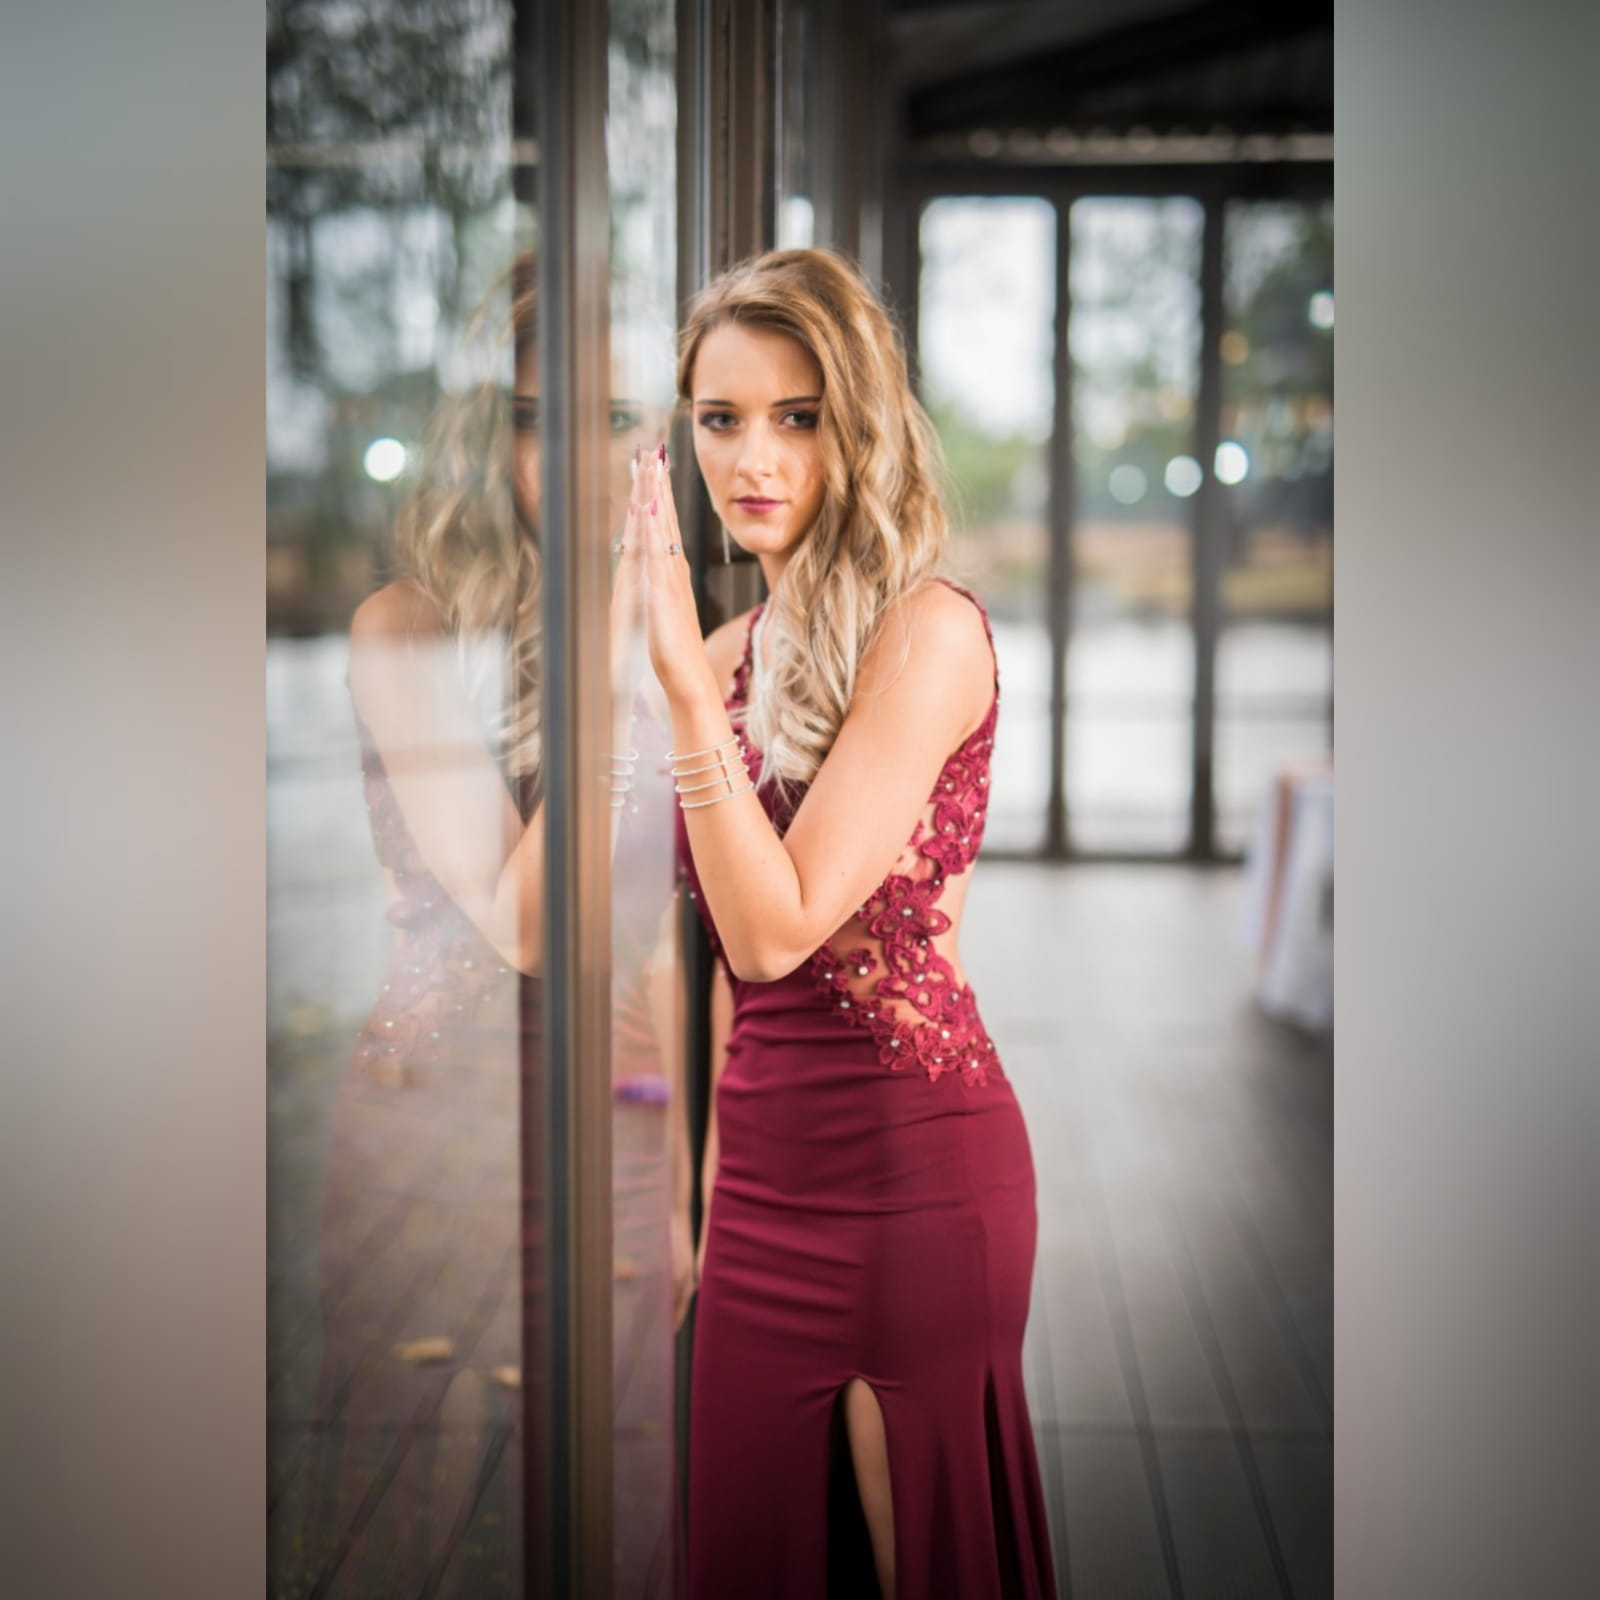 Burgundy long sexy matric farewell dress 5 burgundy long sexy matric farewell dress with an illusion lace low back and side tummy. Sweetheart neckline detailed with lace. With a slit and a train.